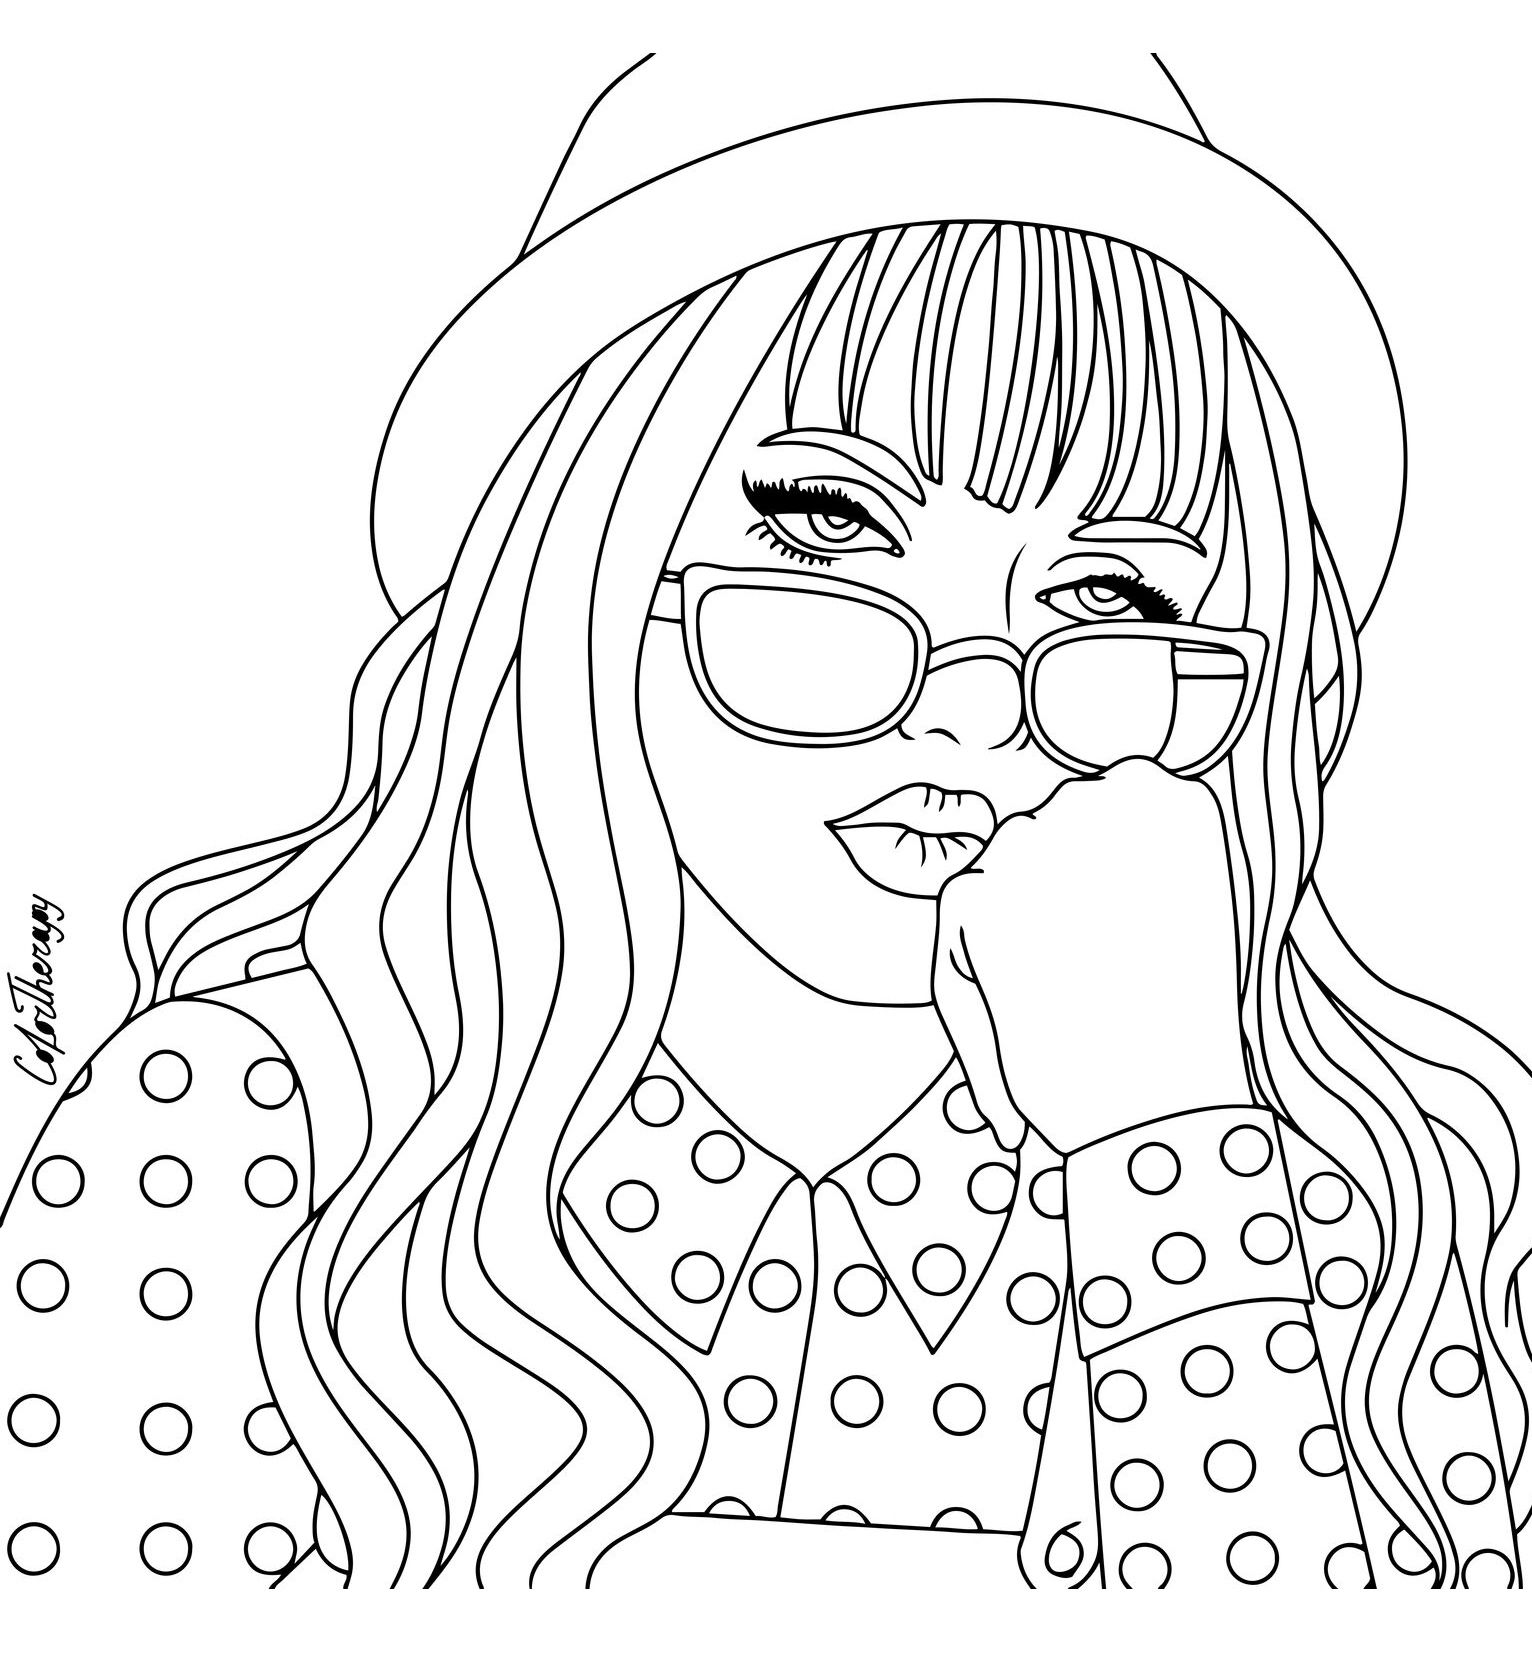 coloring pages of girls realistic idea by rosie chavez on art people coloring pages cute coloring of realistic girls pages